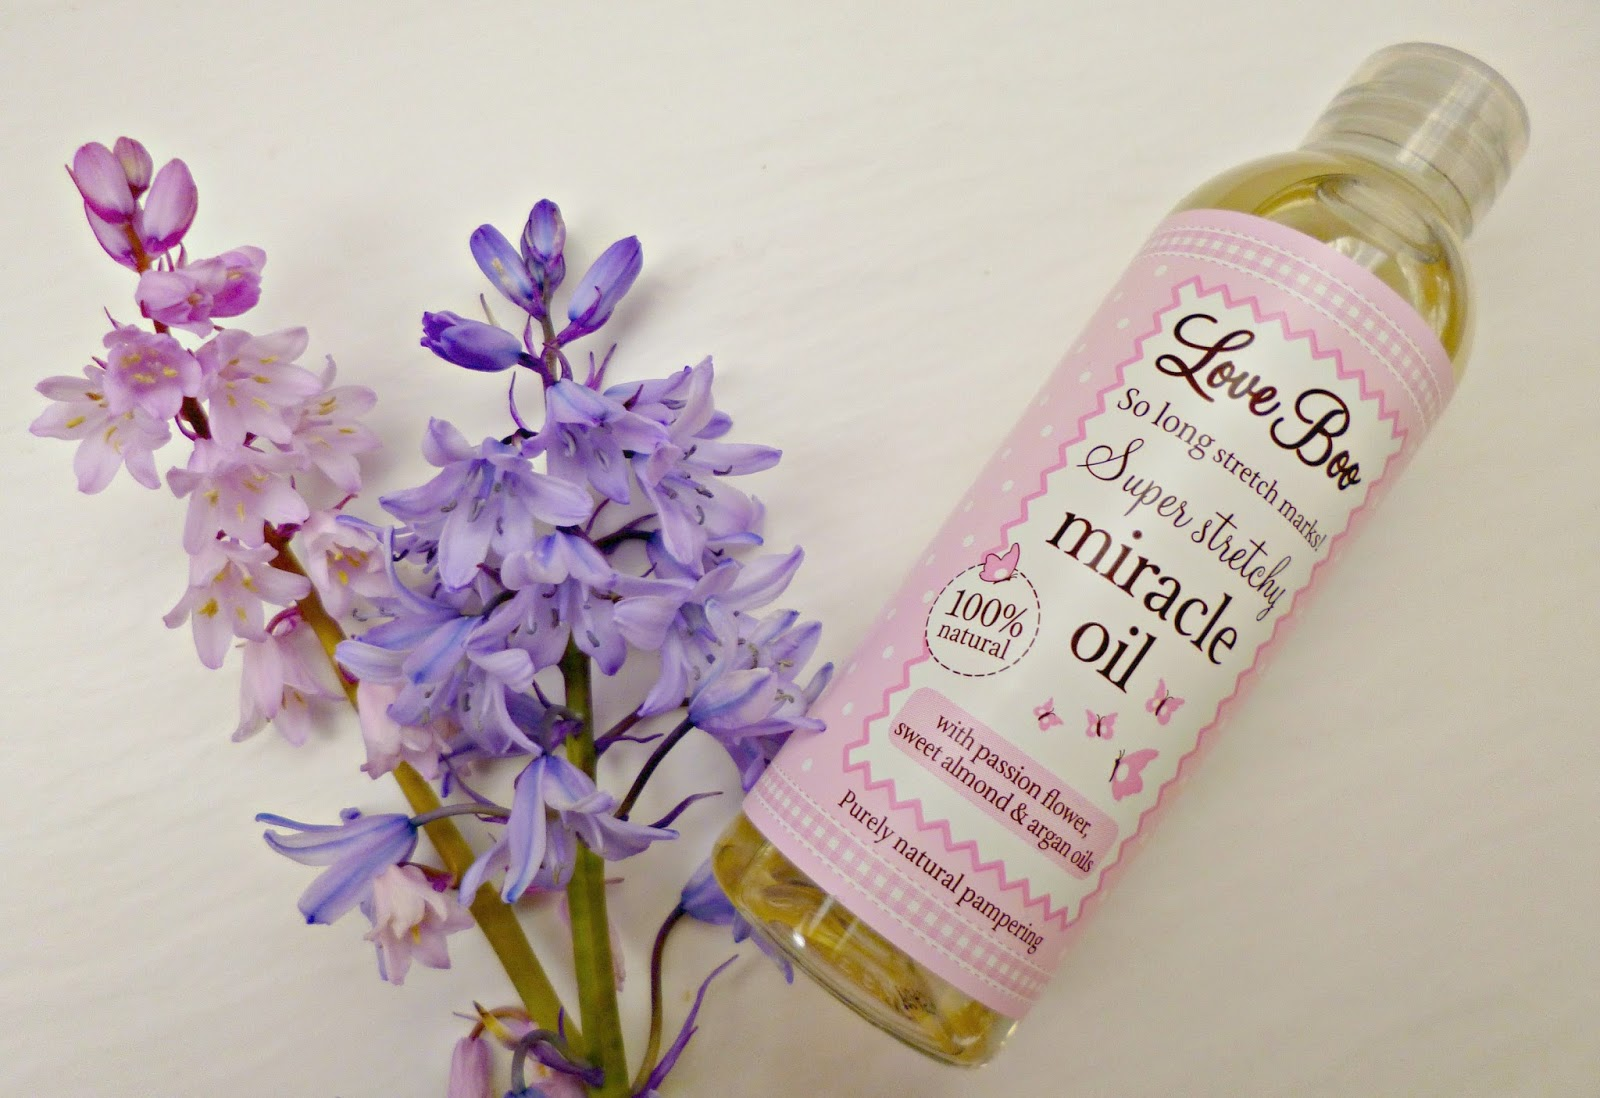 Mum and baby skincare: Love Boo super stretchy miracle oil